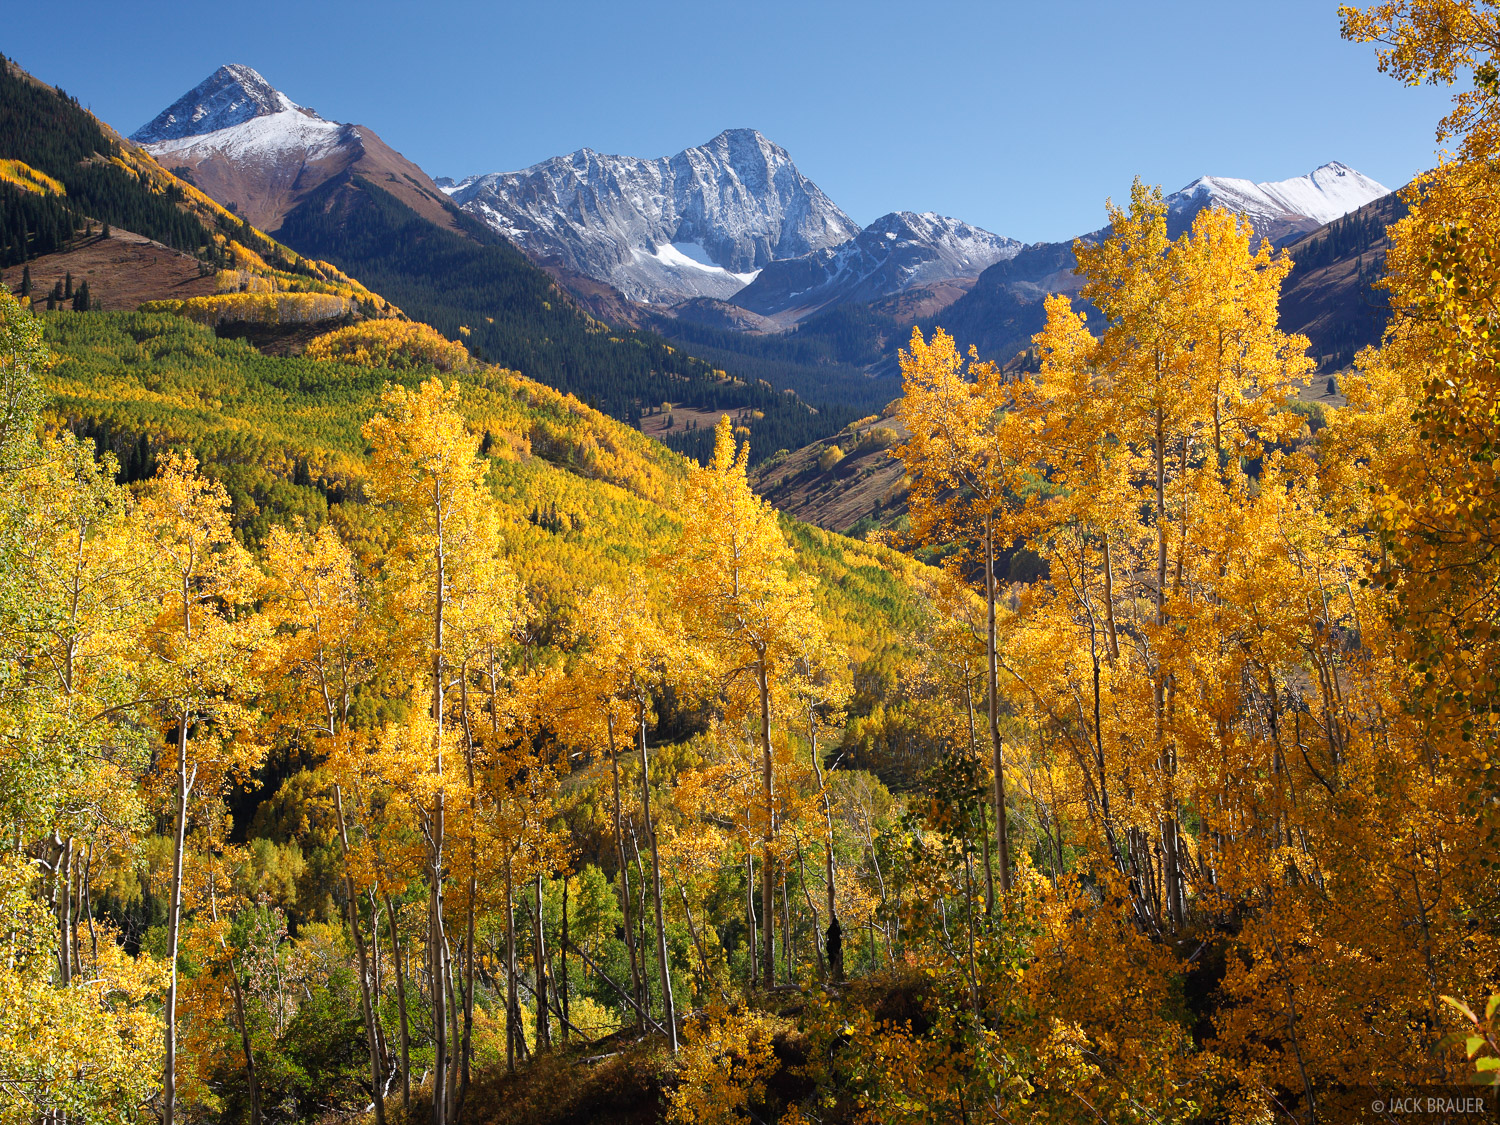 Capitol Peak, aspens, Capitol Creek, Elk Mountains, Colorado, Maroon Bells-Snowmass Wilderness, photo